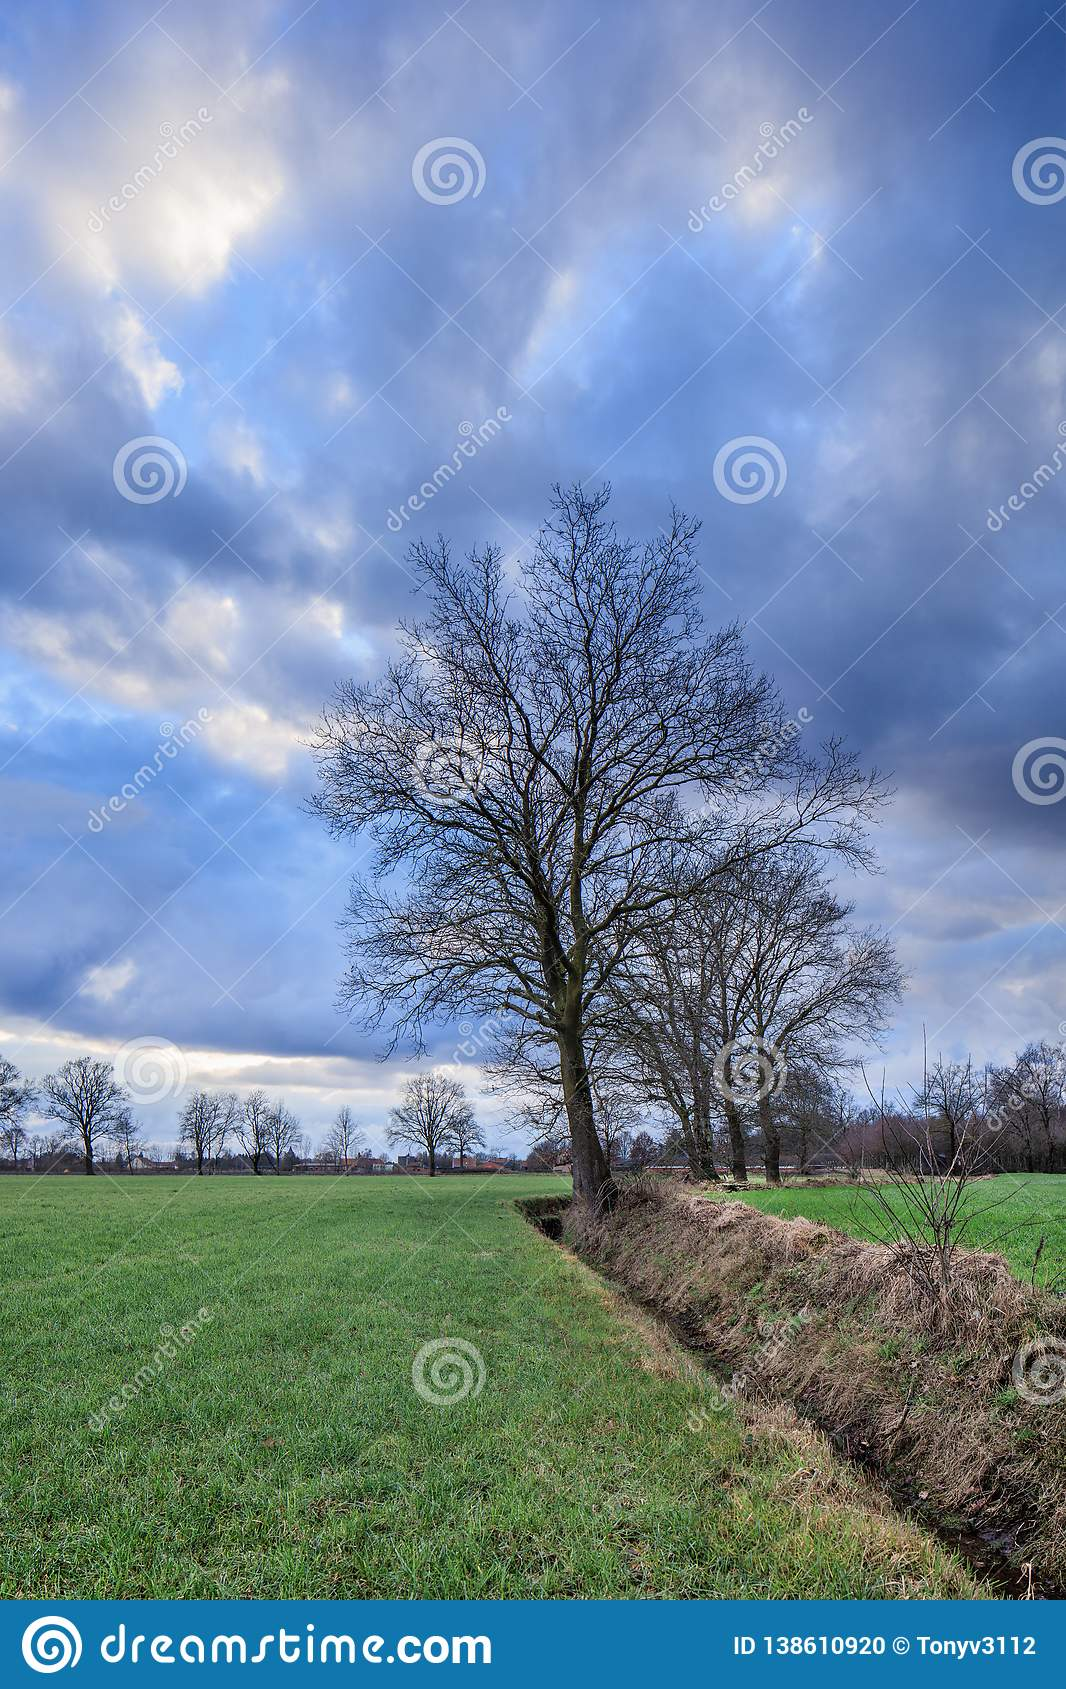 Rural scenery, field with trees near a ditch with dramatic clouds at twilight, Weelde, Flanders, Belgium